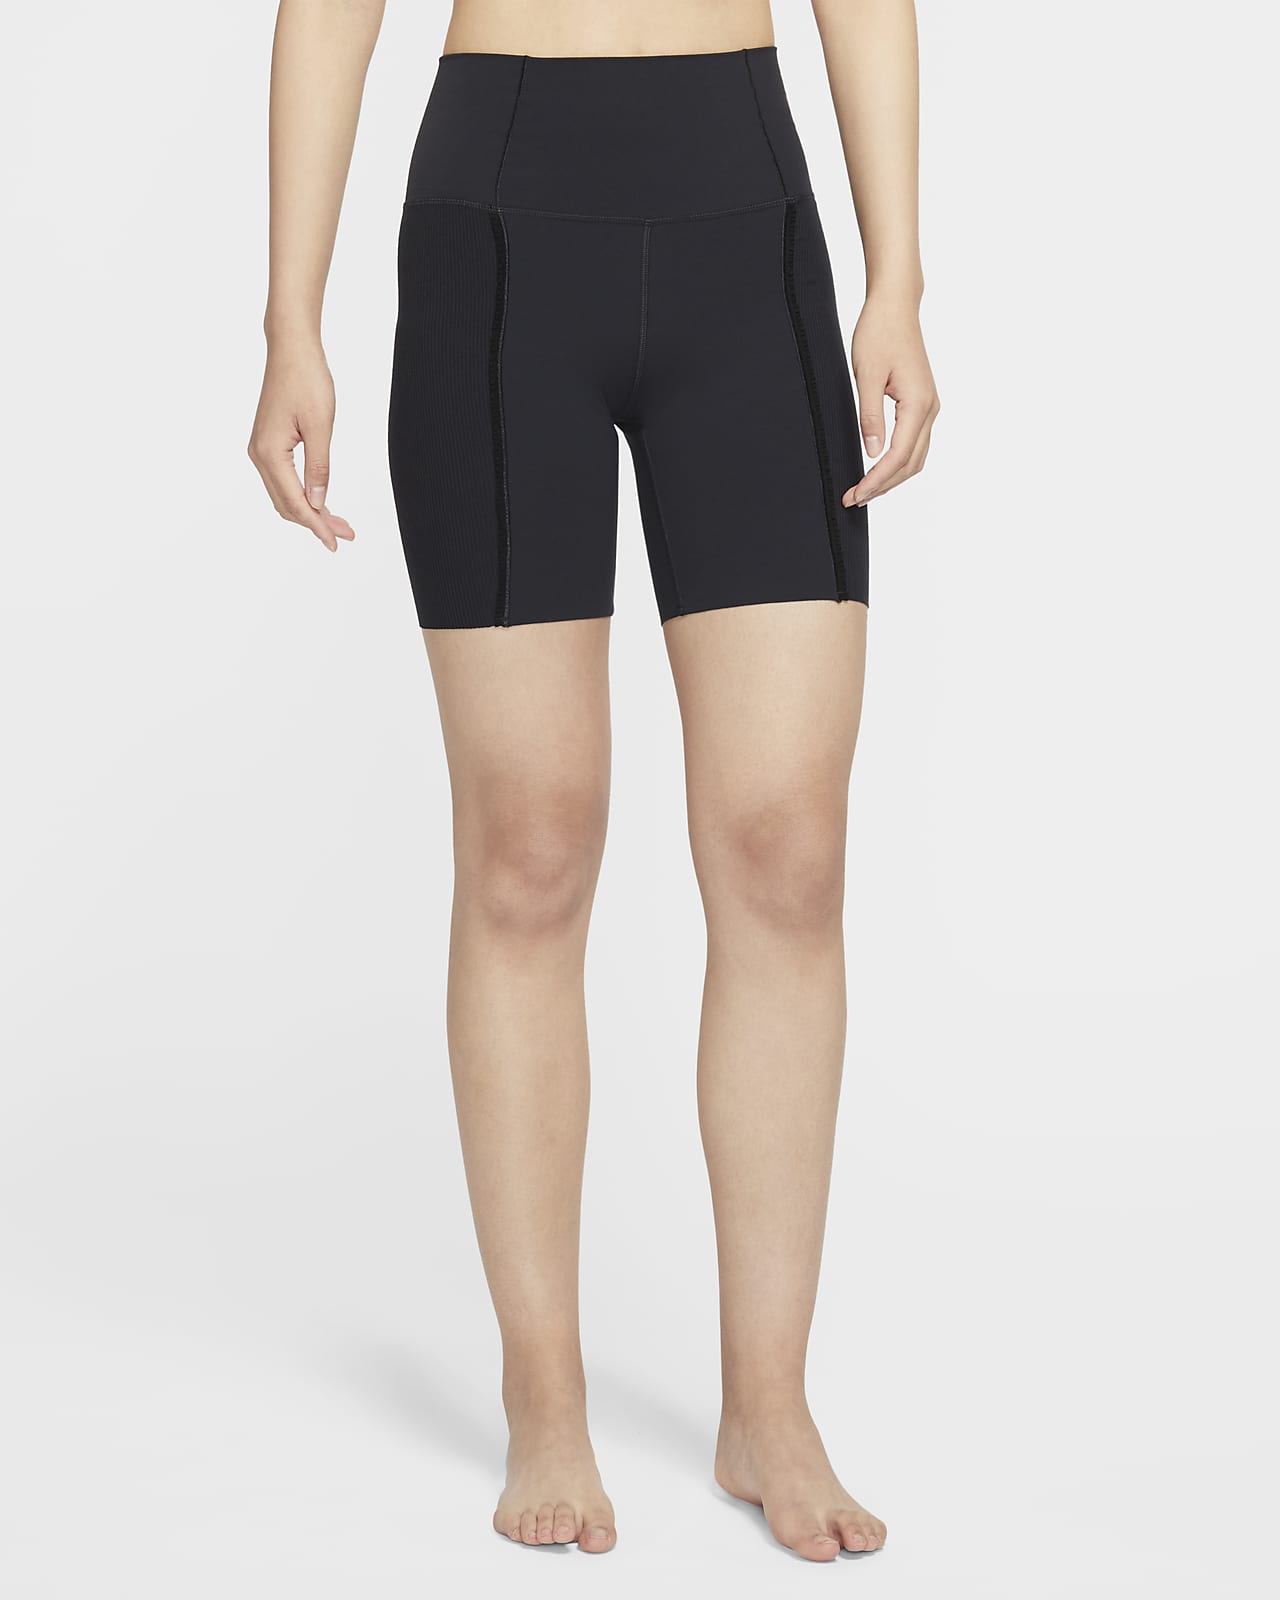 Nike Yoga Women's Infinalon Shorts